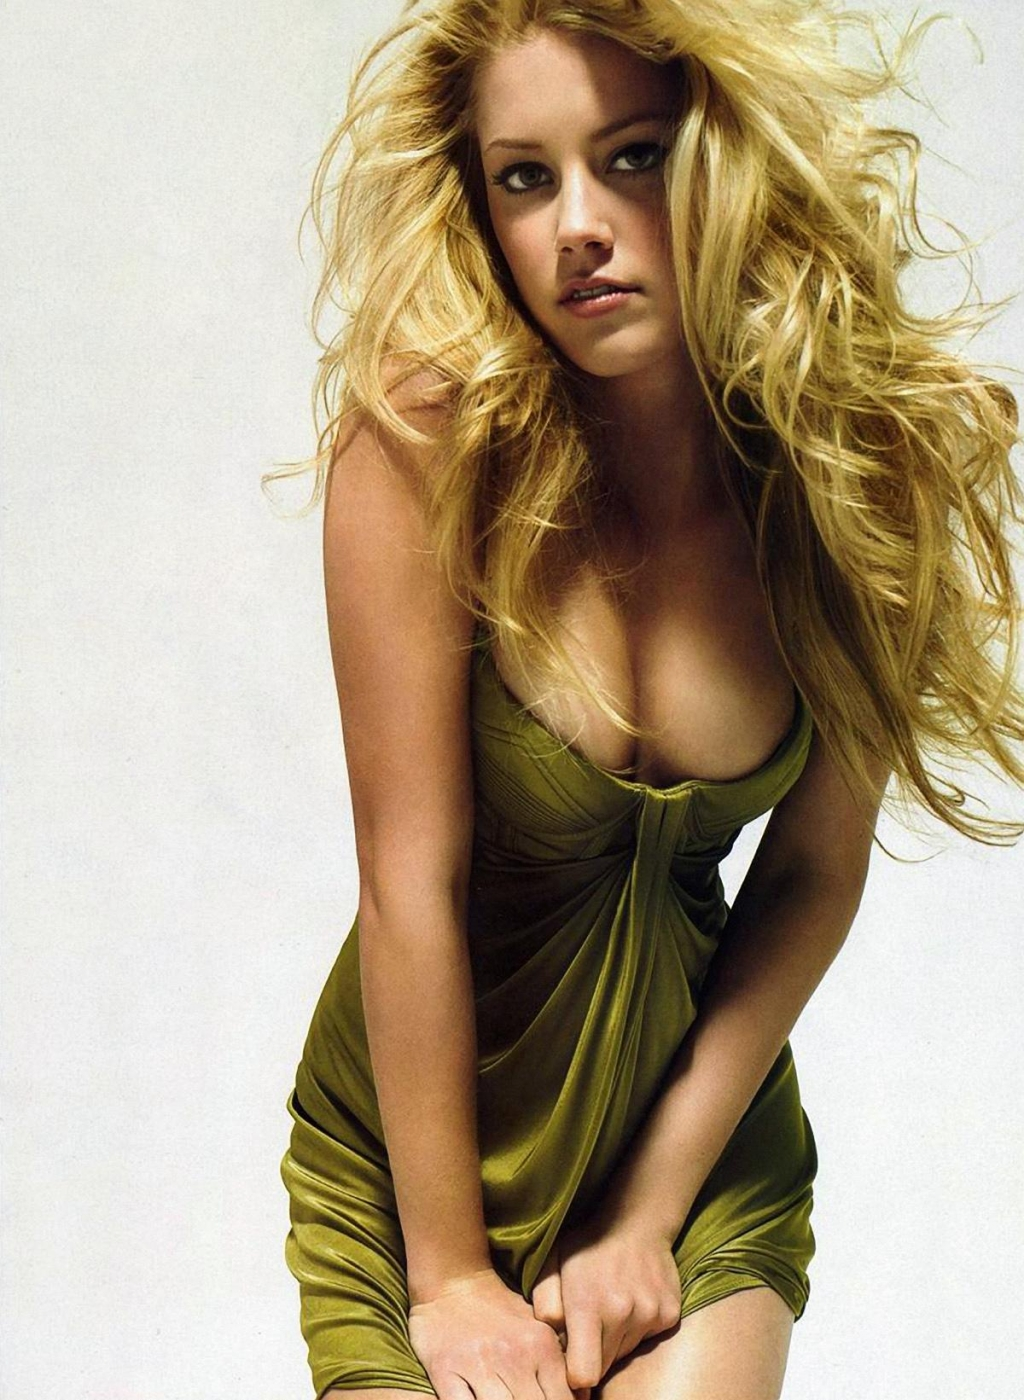 Sexy Amber Heard Photos | Daily Girls @ Female Update